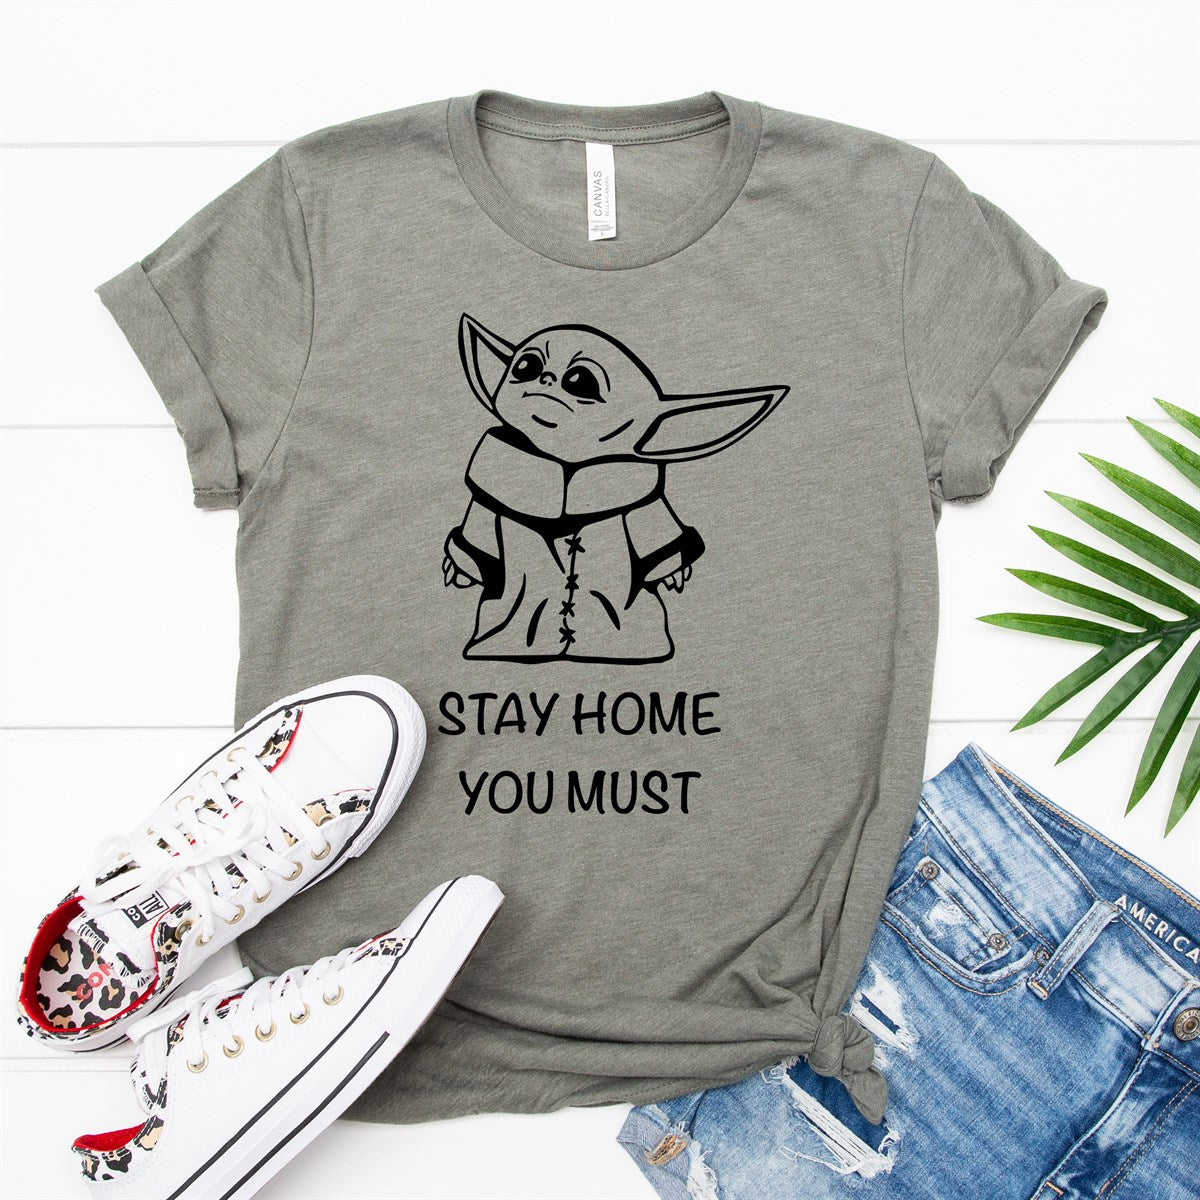 Stay Home You Must Tee - Limeberry Designs